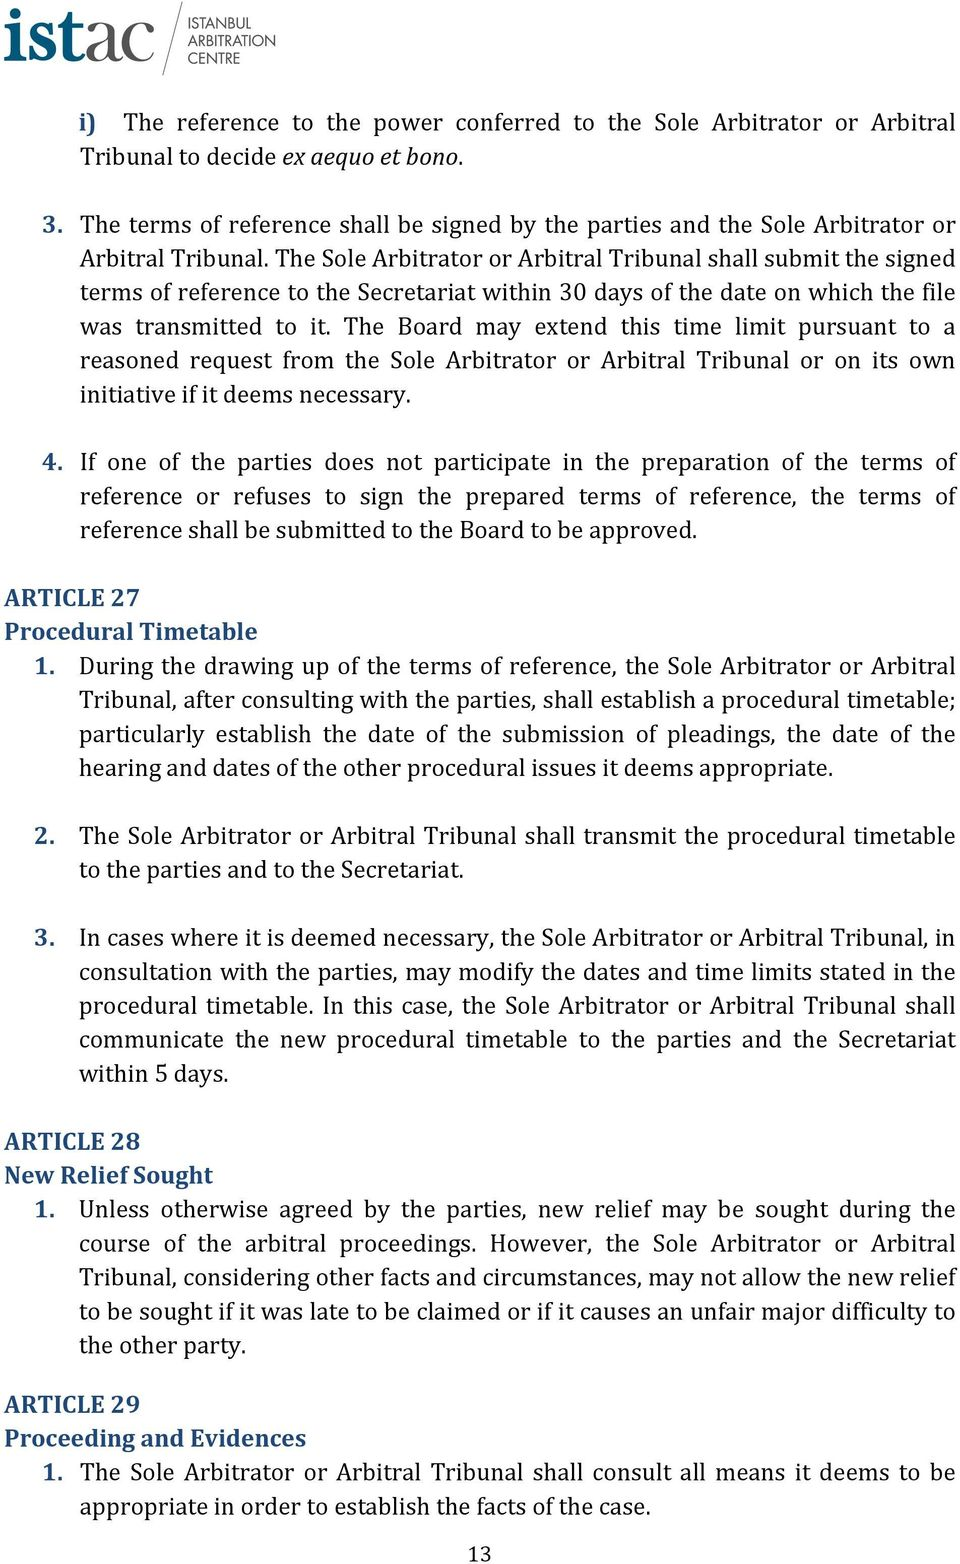 The Sole Arbitrator or Arbitral Tribunal shall submit the signed terms of reference to the Secretariat within 30 days of the date on which the file was transmitted to it.